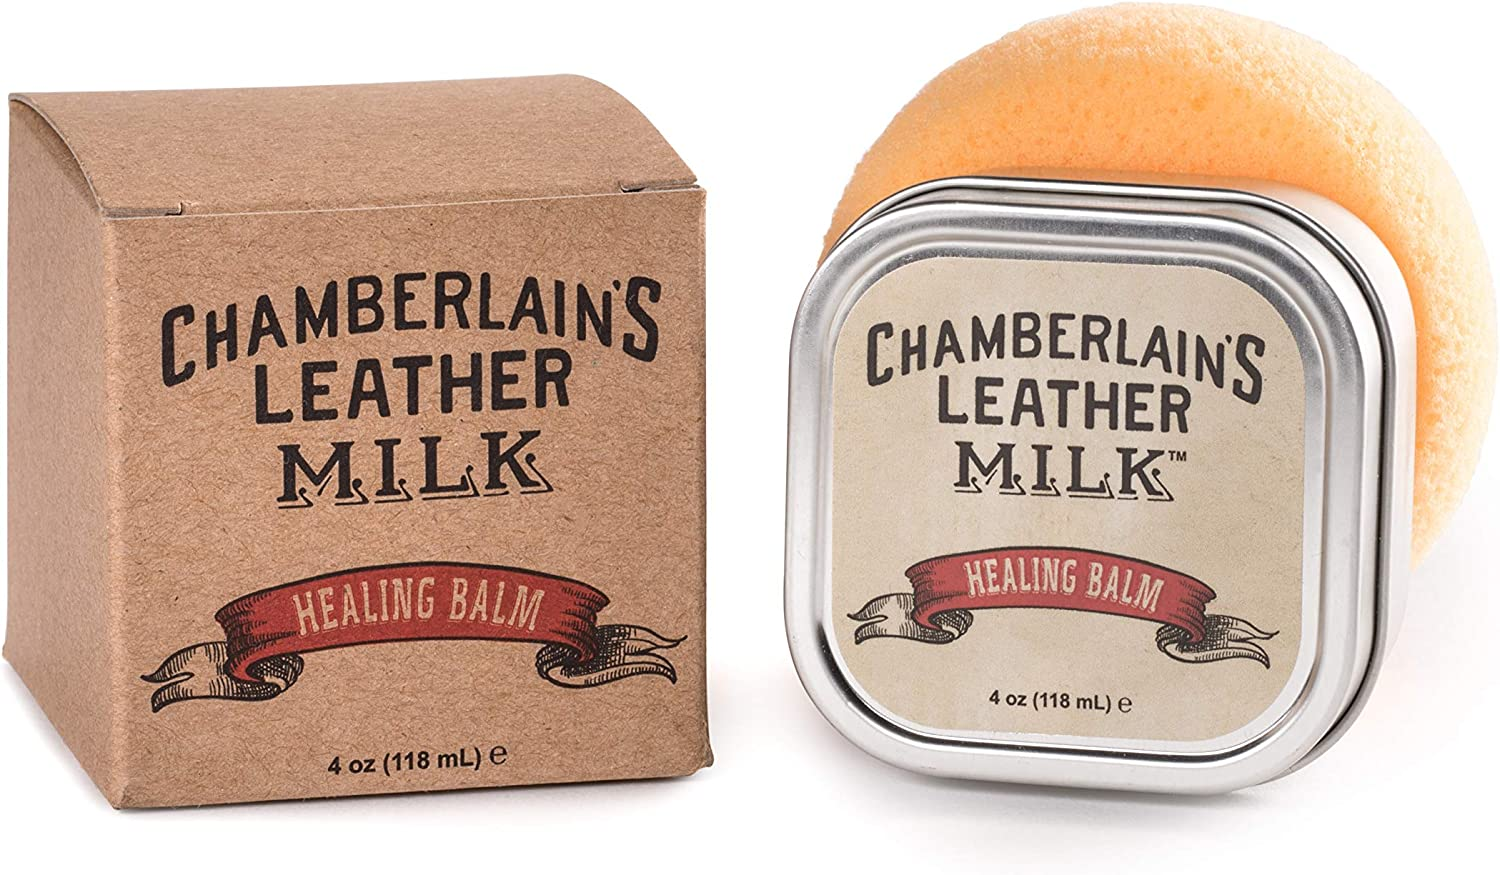 Leather Conditioner & Cleaner, Scratch Repair   Leather Milk Healing Balm - Heals & Restores Dry, Cracked, Scratched Leather   All Natural, Non-Toxic Leather Cleaner